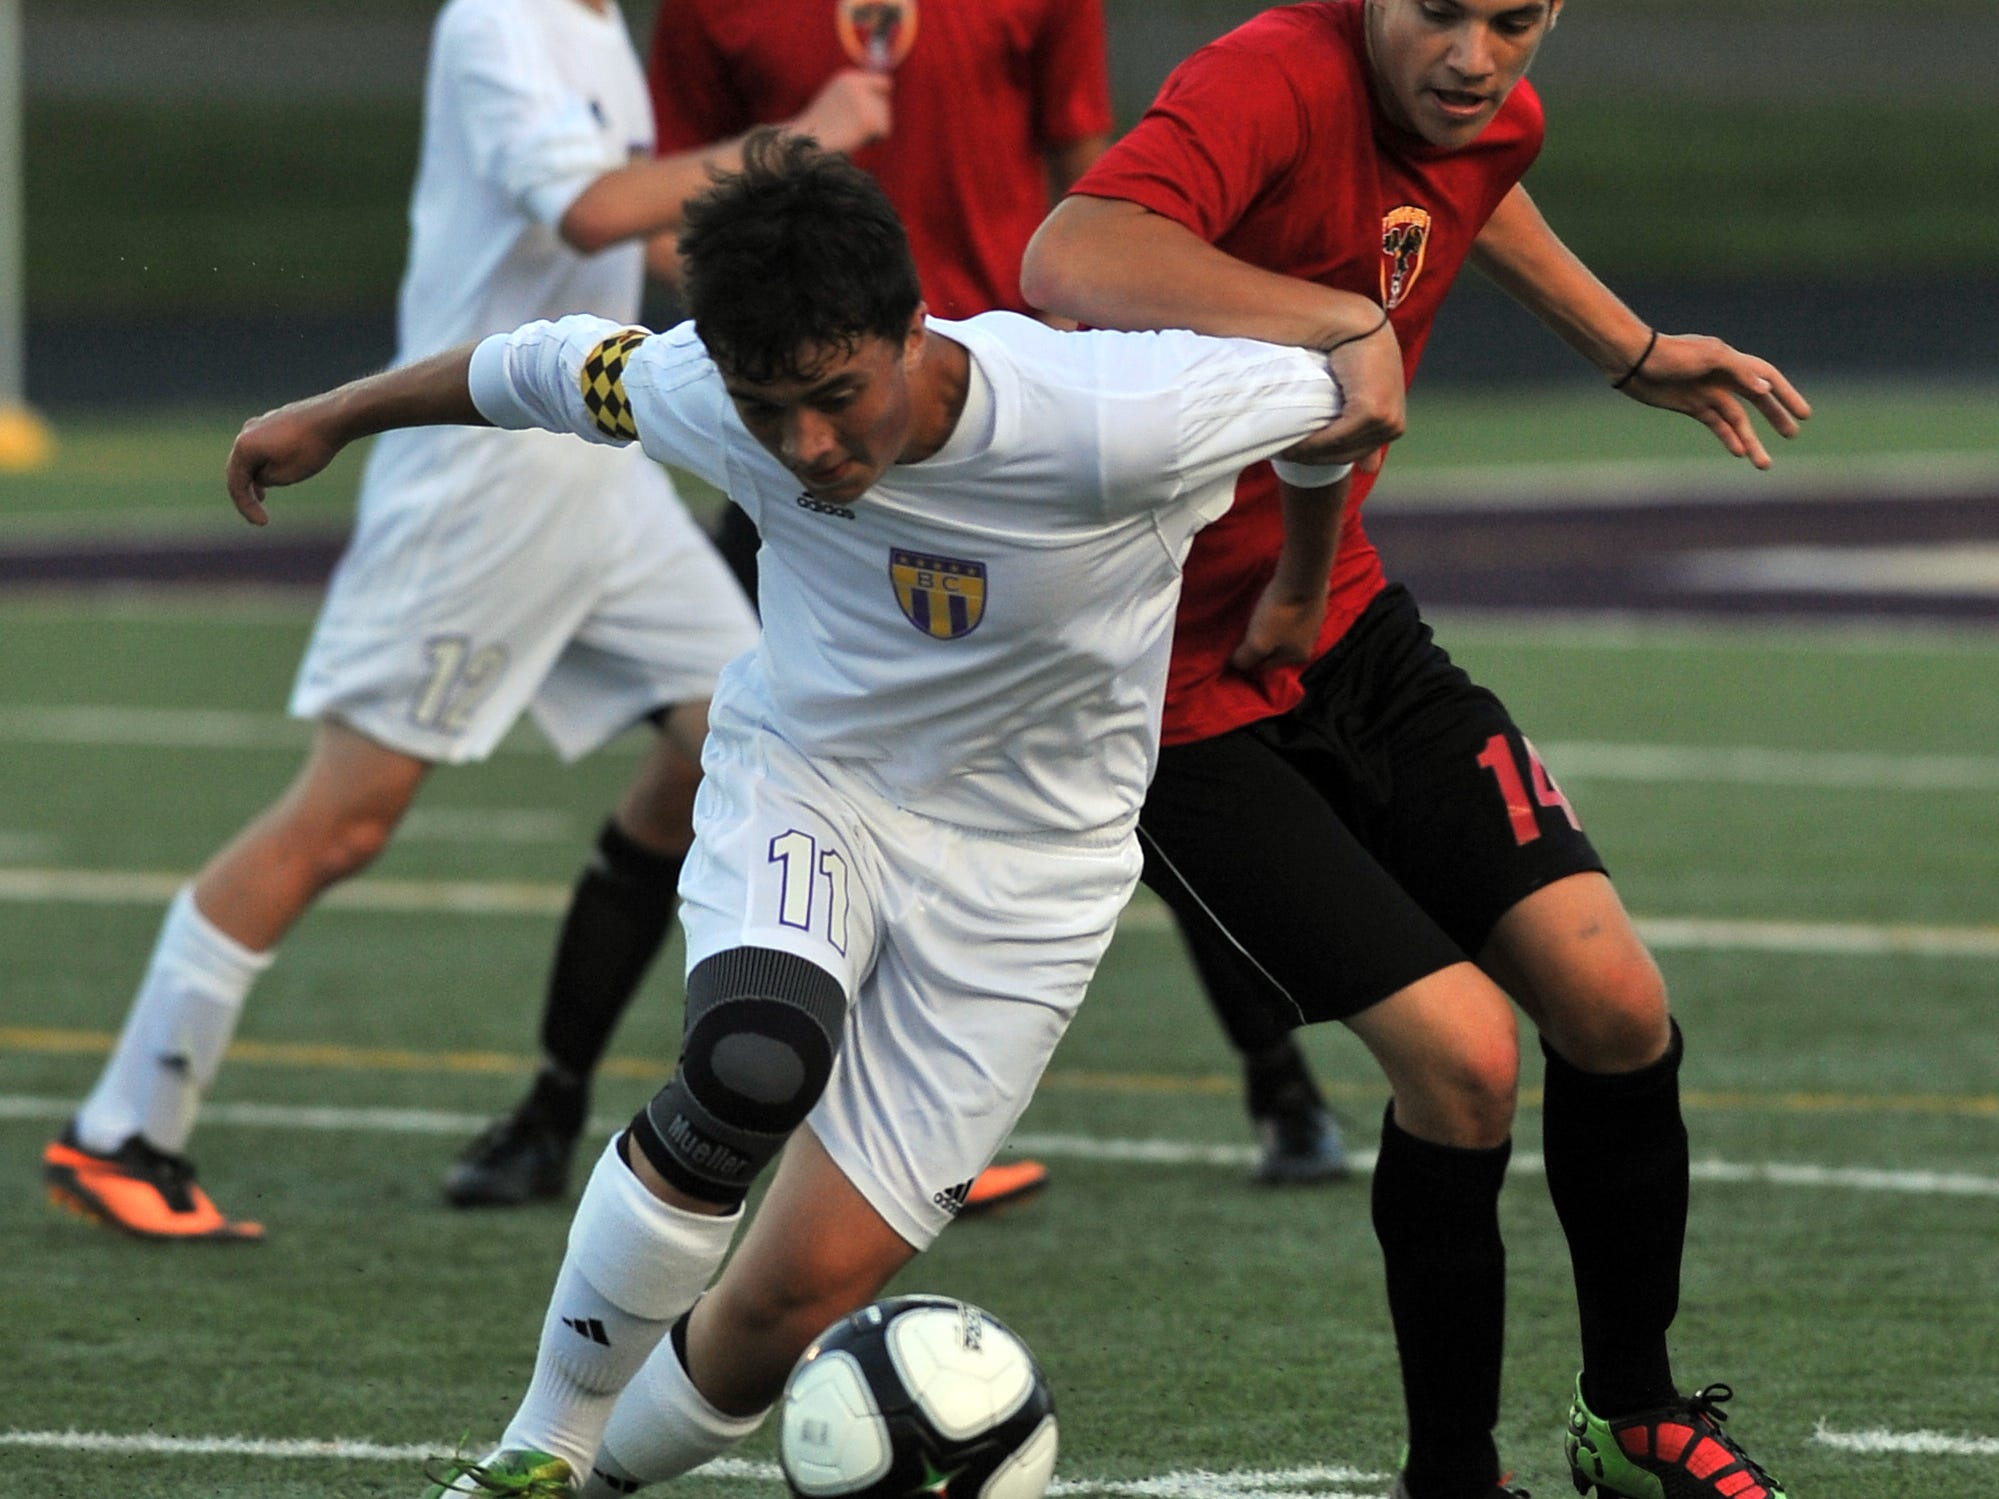 Bloom-Carroll's McCoy Patino races toward the ball during a nonleague game Thursday against Big Walnut.